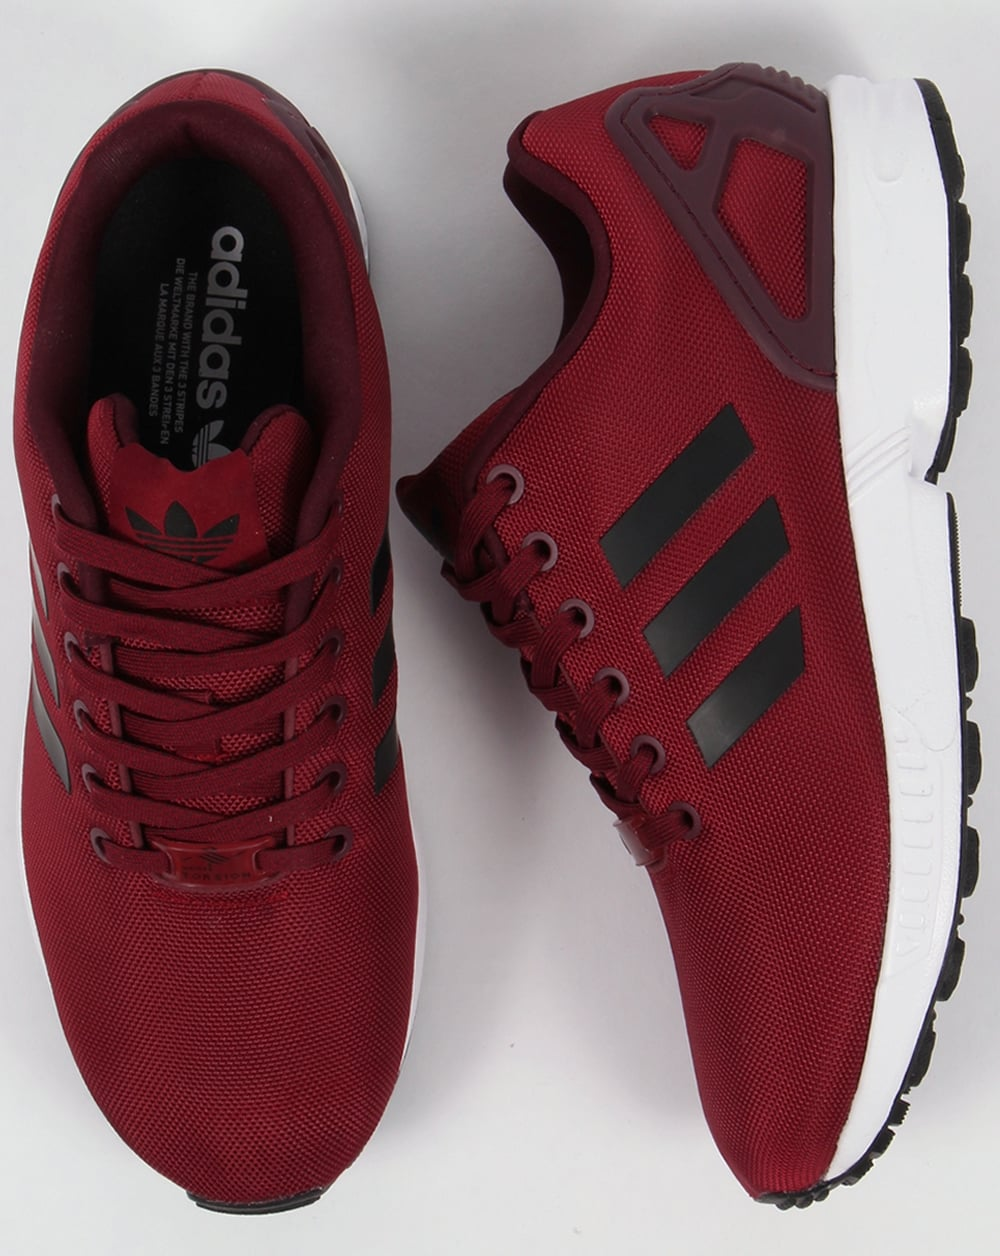 Adidas ZX Flux Trainers Burgundy/Black